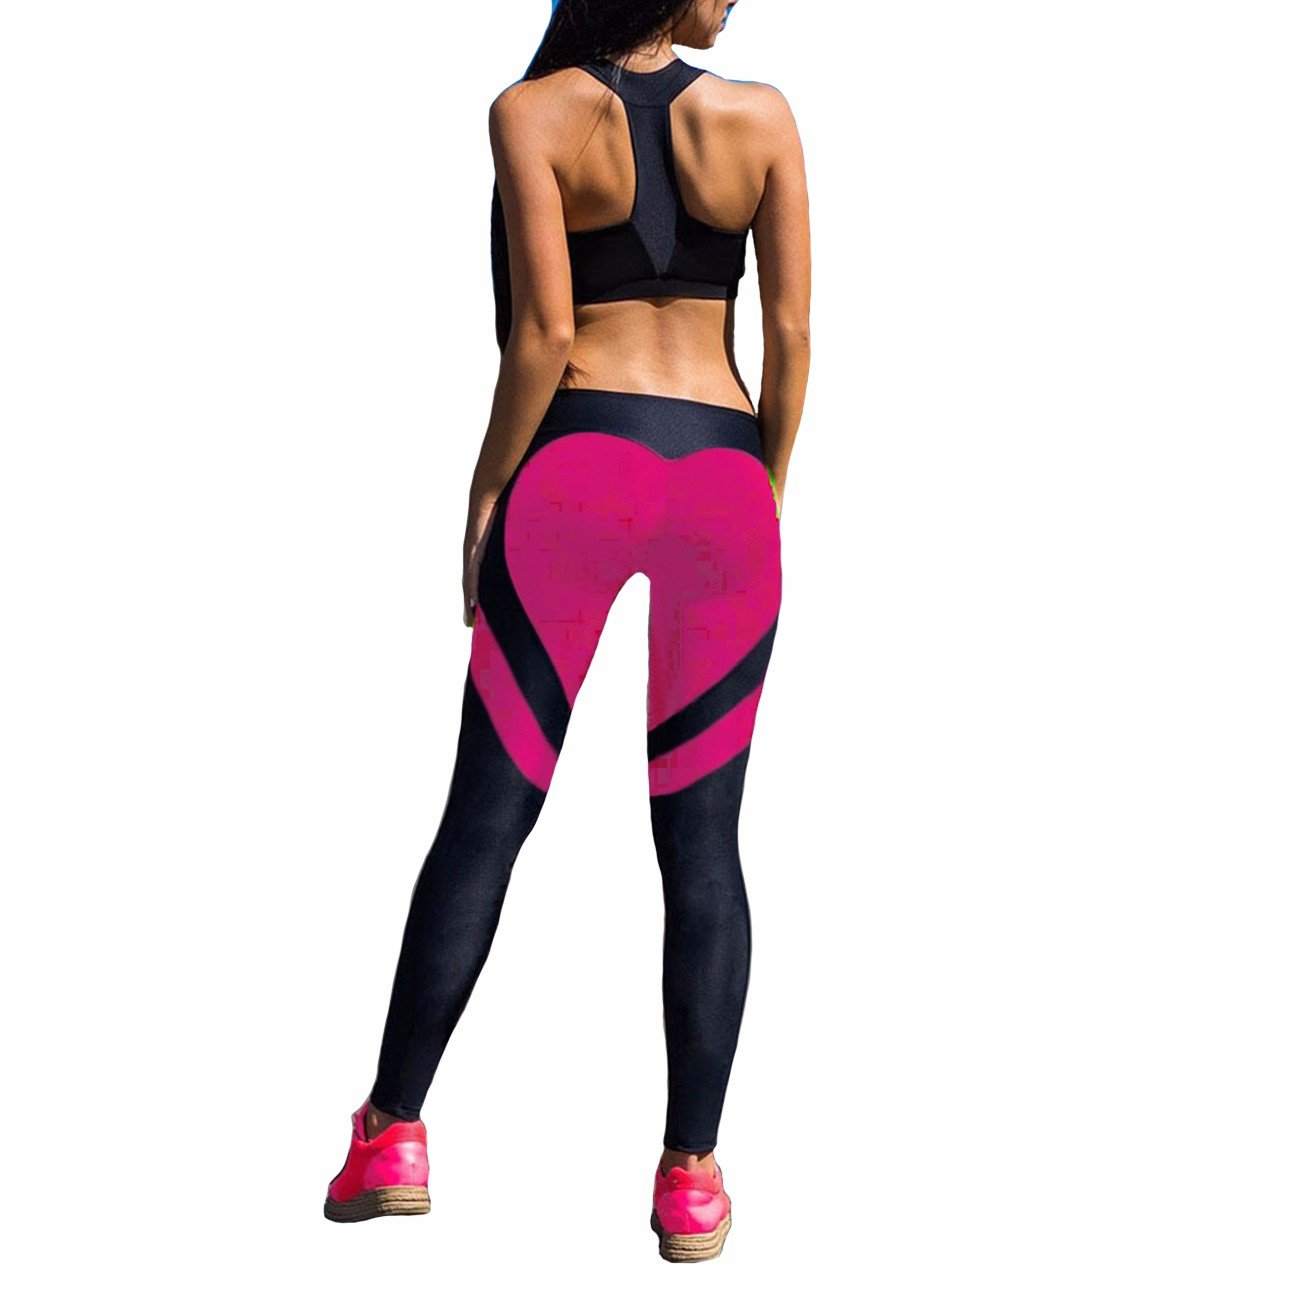 Fittoo Women's Heart Shape Yoga Pants Sport Pants Workout Leggings Sexy High Waist Trousers - Rose Red (Small)